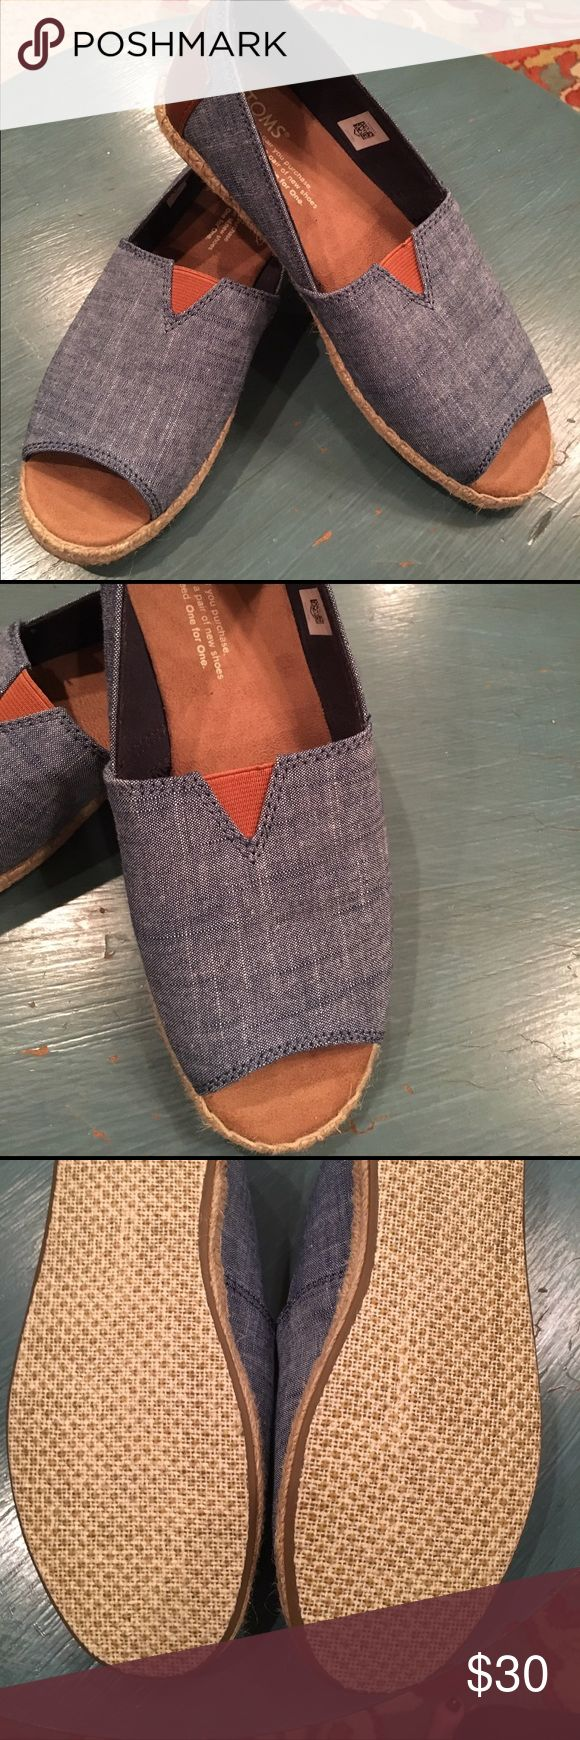 NWOB TOMS chambray espadrille open toe flats These have never been worn! I bought them for a specific outfit and they didn't work and I never got around to sending them back. They are very comfortable and would be great for your upcoming spring break! They are a light blue chambray. TOMS Shoes Espadrilles